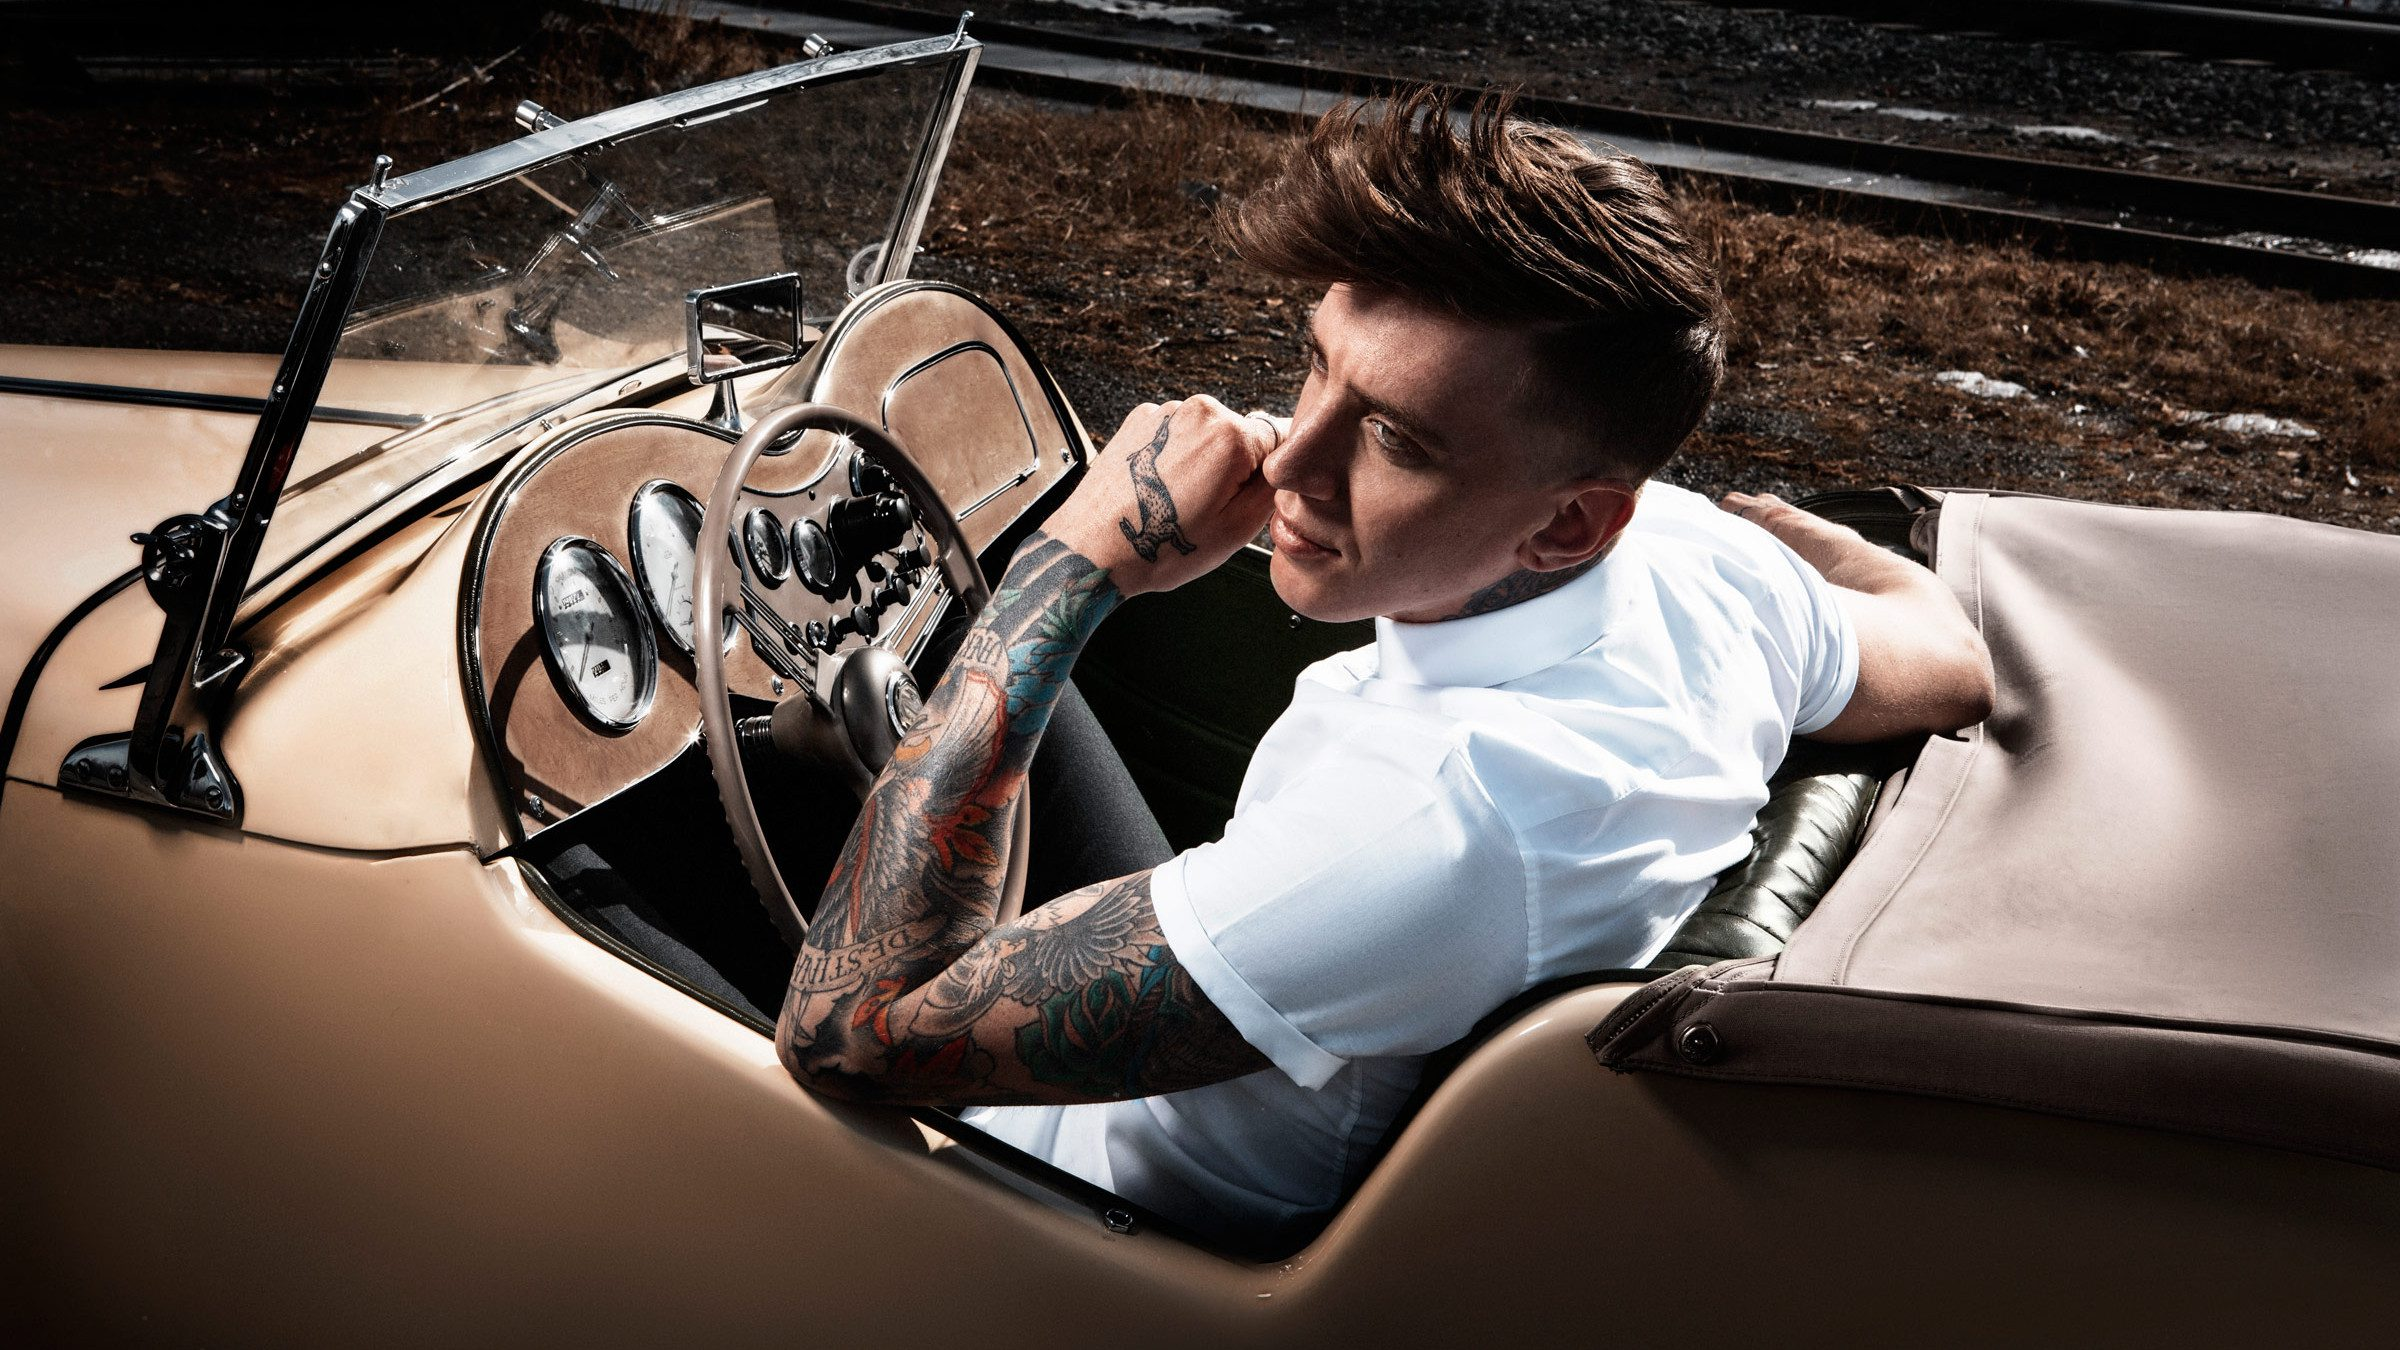 Tattoos Tan Car Vintage